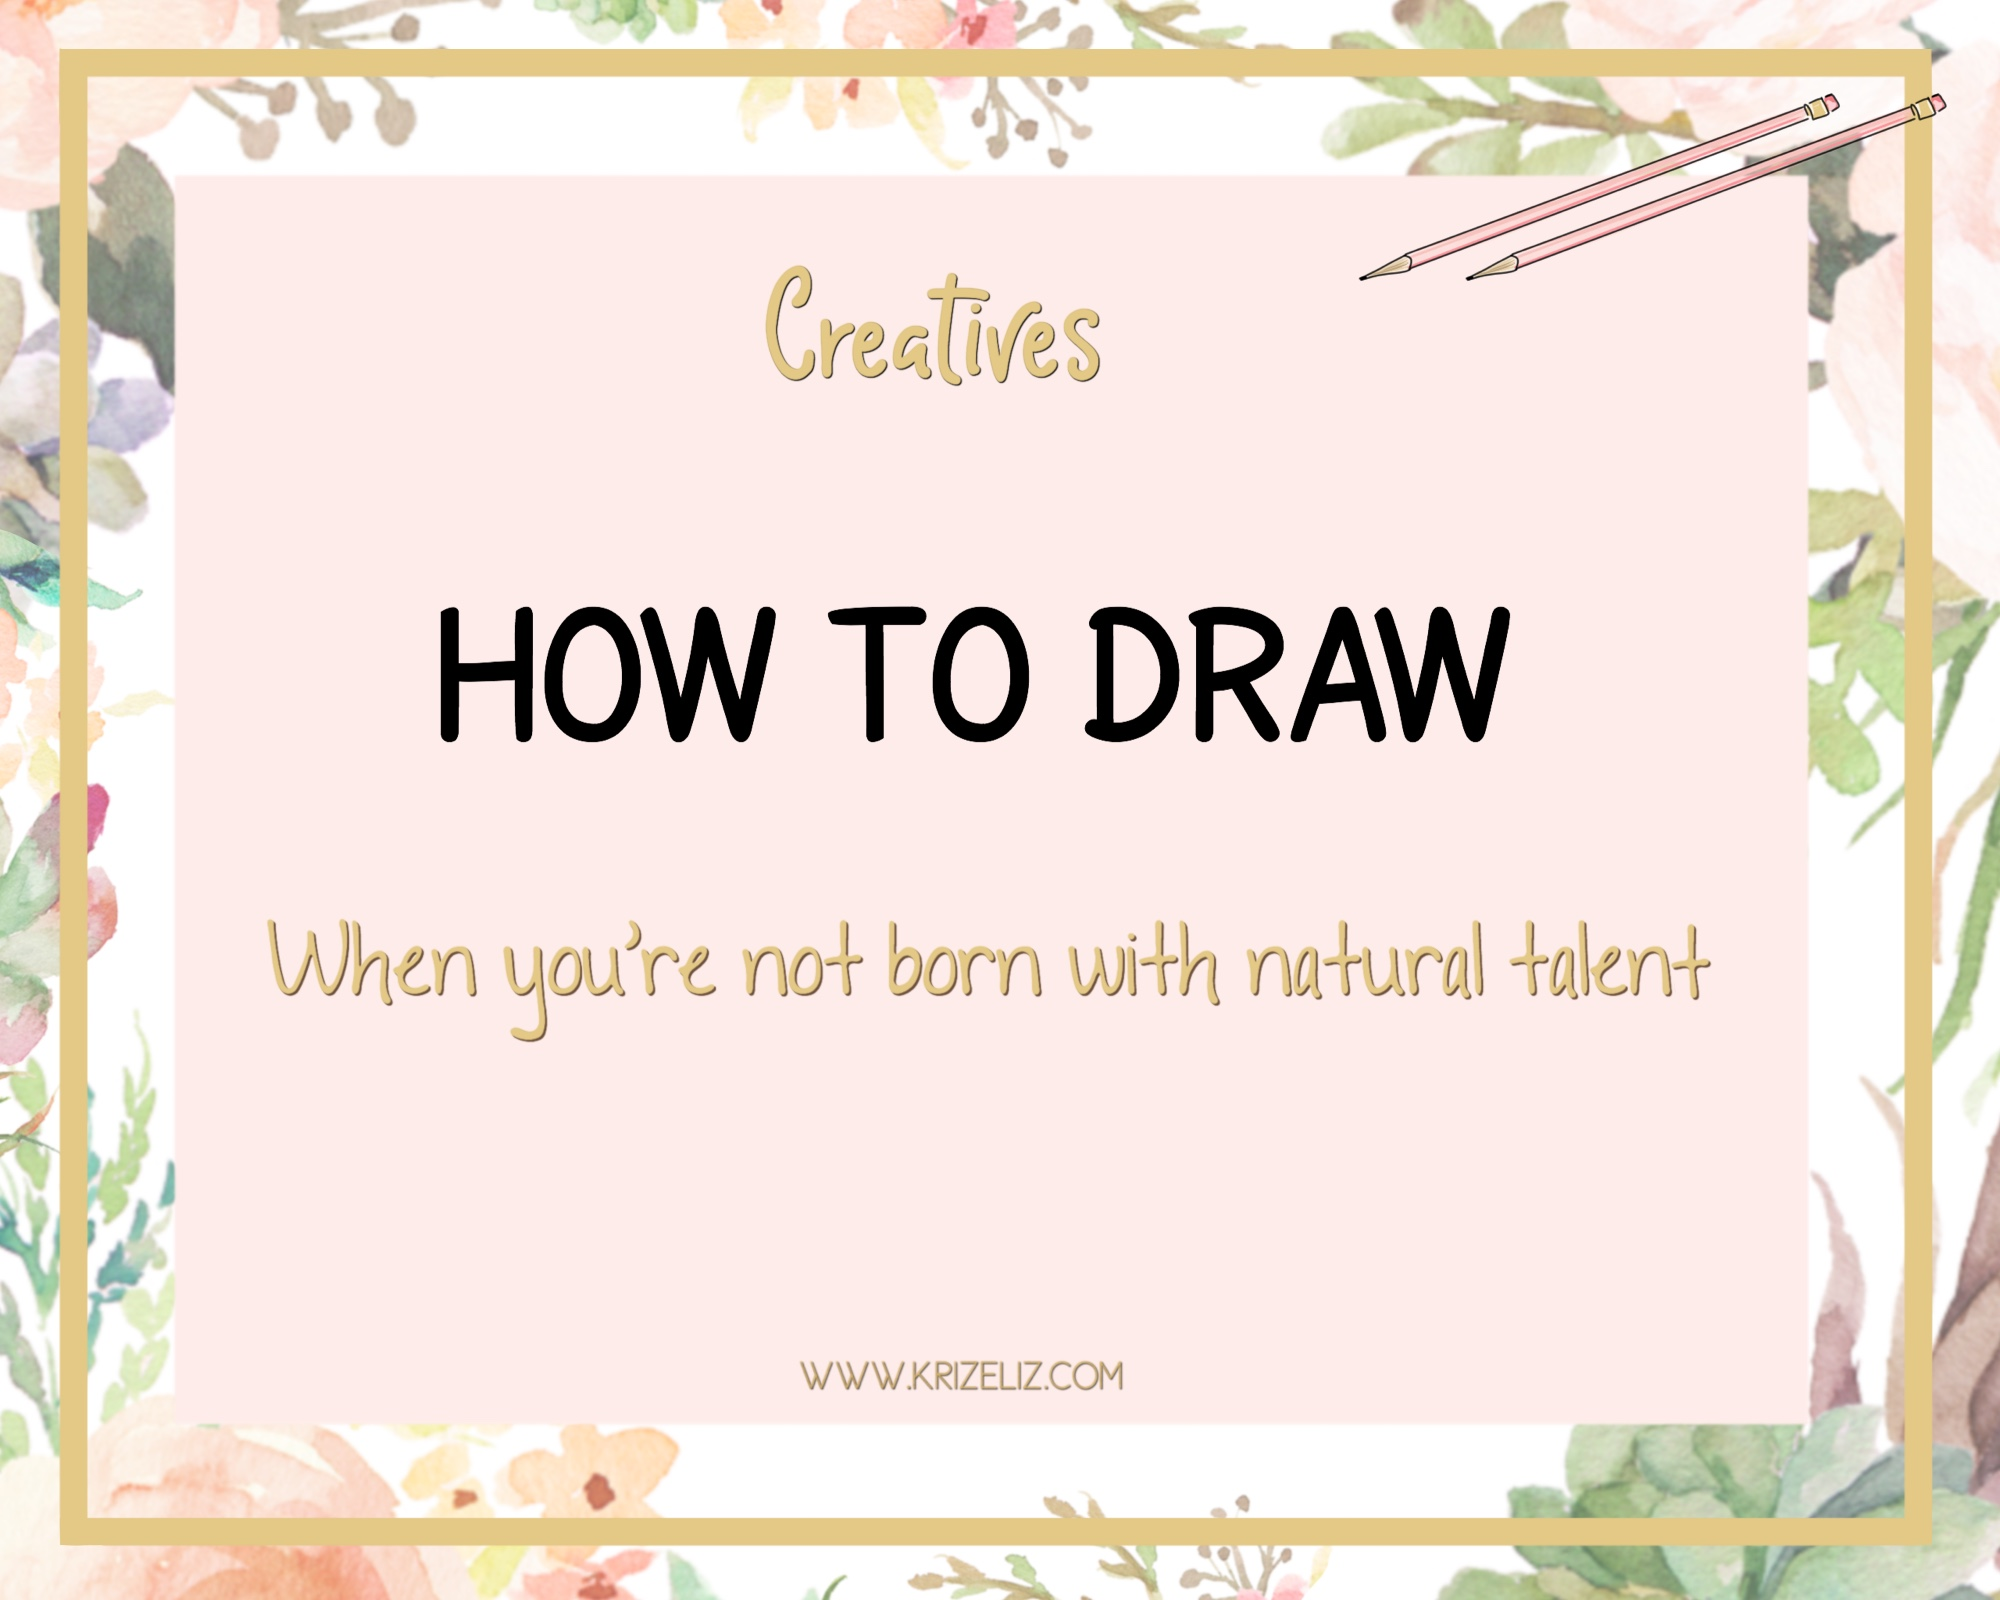 How to Draw when You're not Born with Natural Talent